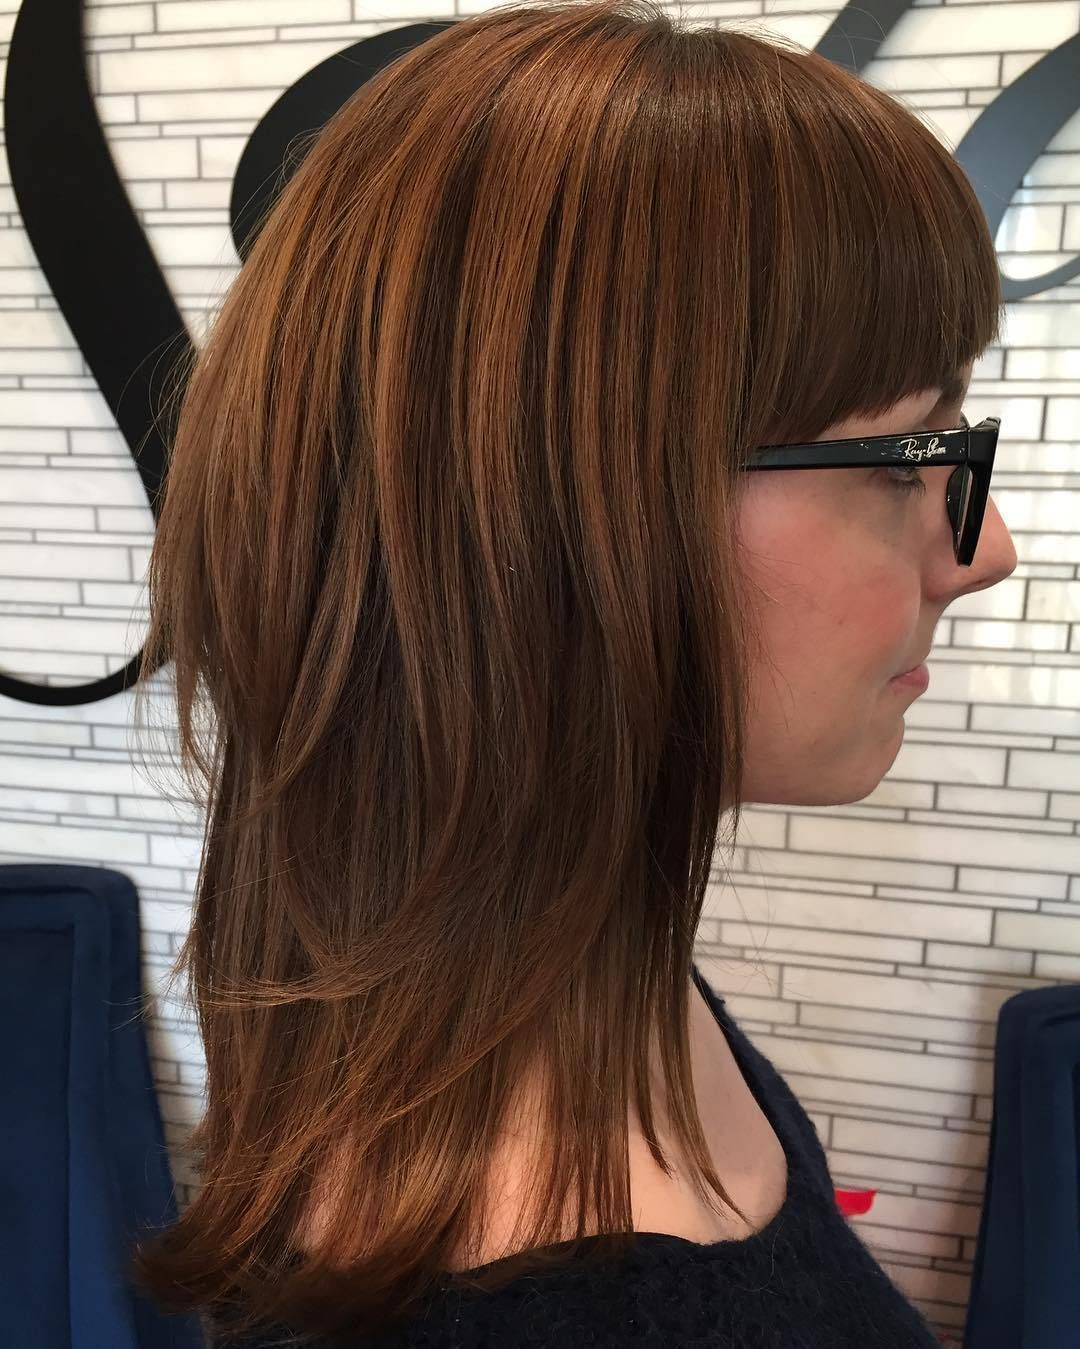 50 Gorgeous Medium-Length Shag Haircuts for All Hair Types #27piecehairstyles 50 Gorgeous Medium-Length Shag Haircuts for All Hair Types,  #frisuren #hairstyles #kapsel #mediumhair #mittleresHaar #χτενίσματα #зачісок #причесок #ヘアスタイル, #27piecehairstyles 50 Gorgeous Medium-Length Shag Haircuts for All Hair Types #27piecehairstyles 50 Gorgeous Medium-Length Shag Haircuts for All Hair Types,  #frisuren #hairstyles #kapsel #mediumhair #mittleresHaar #χτενί� #27piecehairstyles